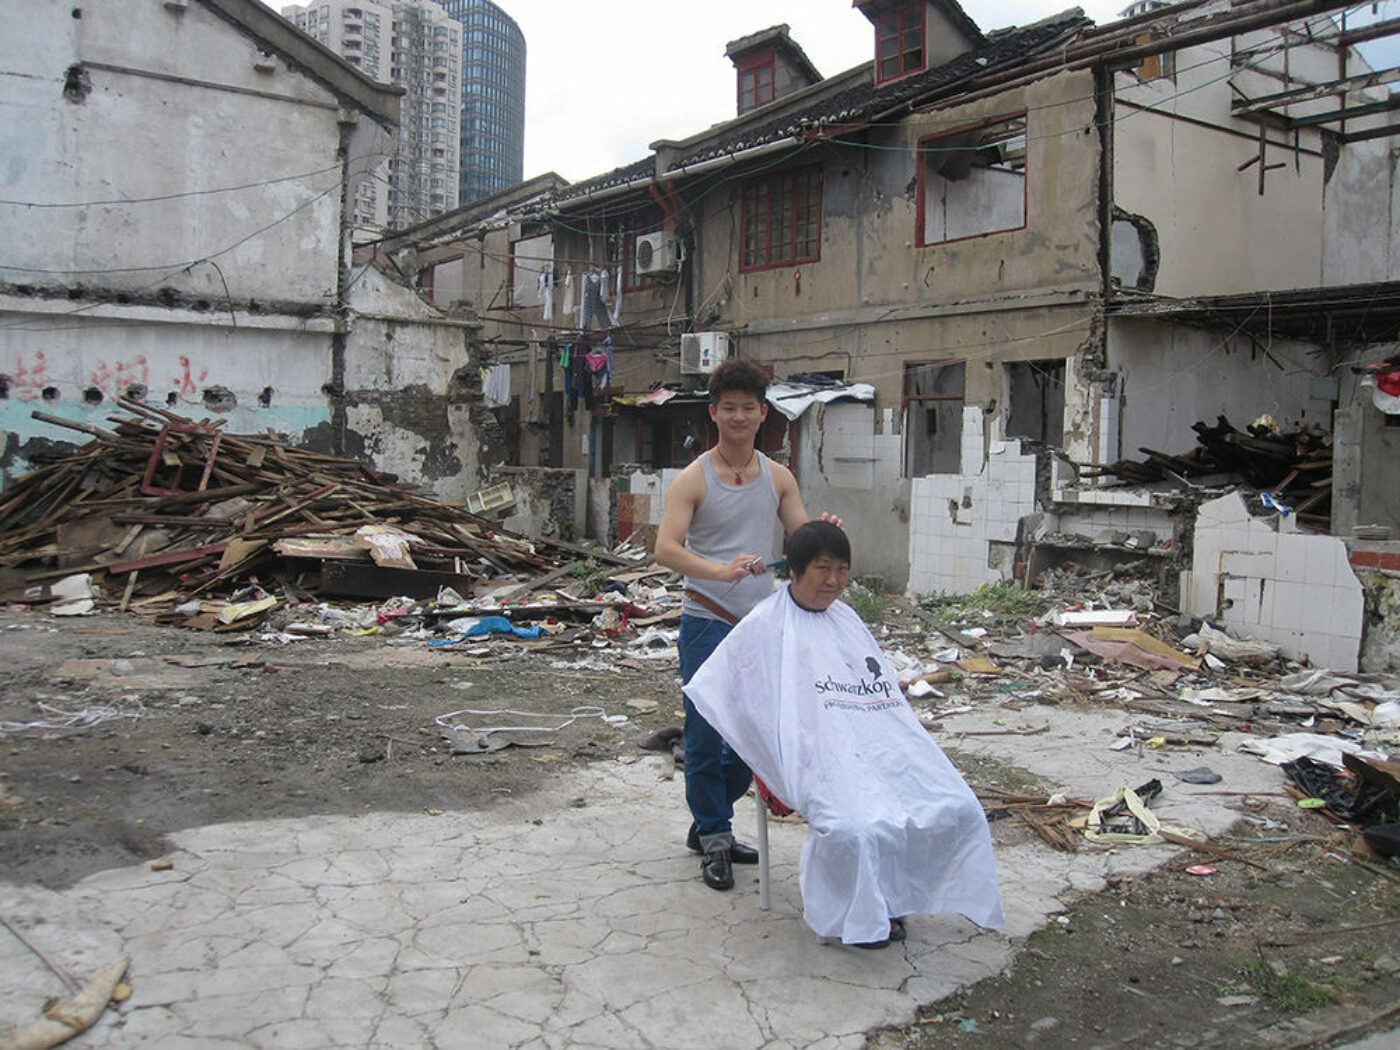 China's Hukou System: Attempts to Control Urbanization by Strictly Separating Urban and Rural